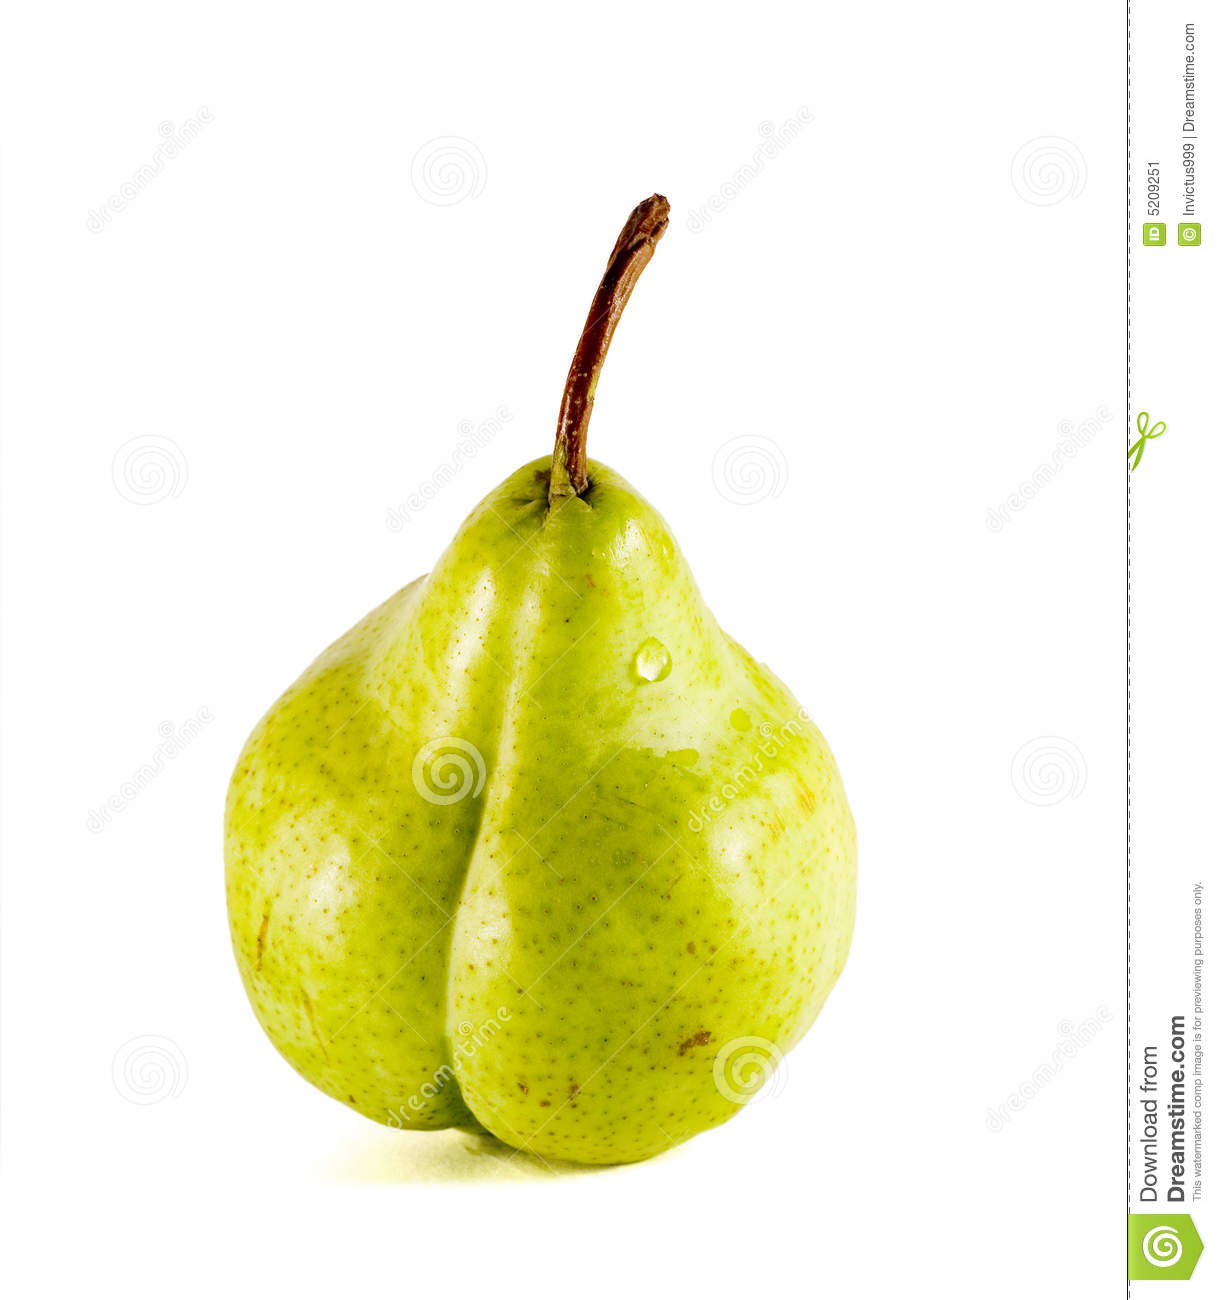 how to tell if a bartlett pear is ripe